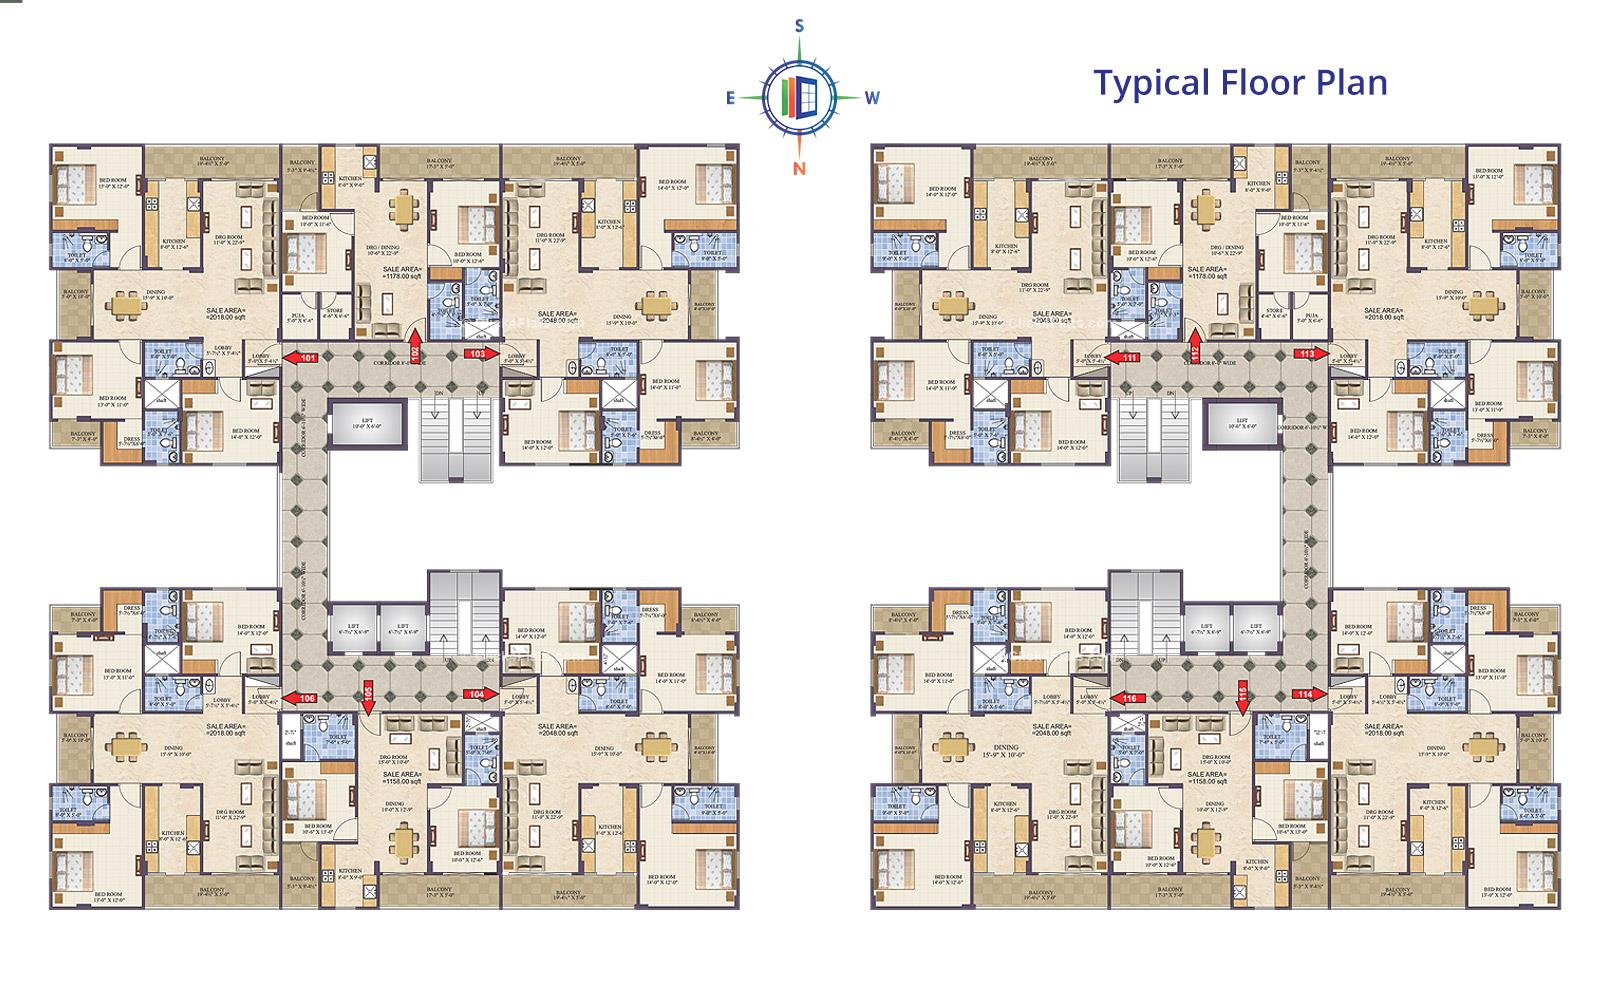 Eminent Towers Typical Floor Plan